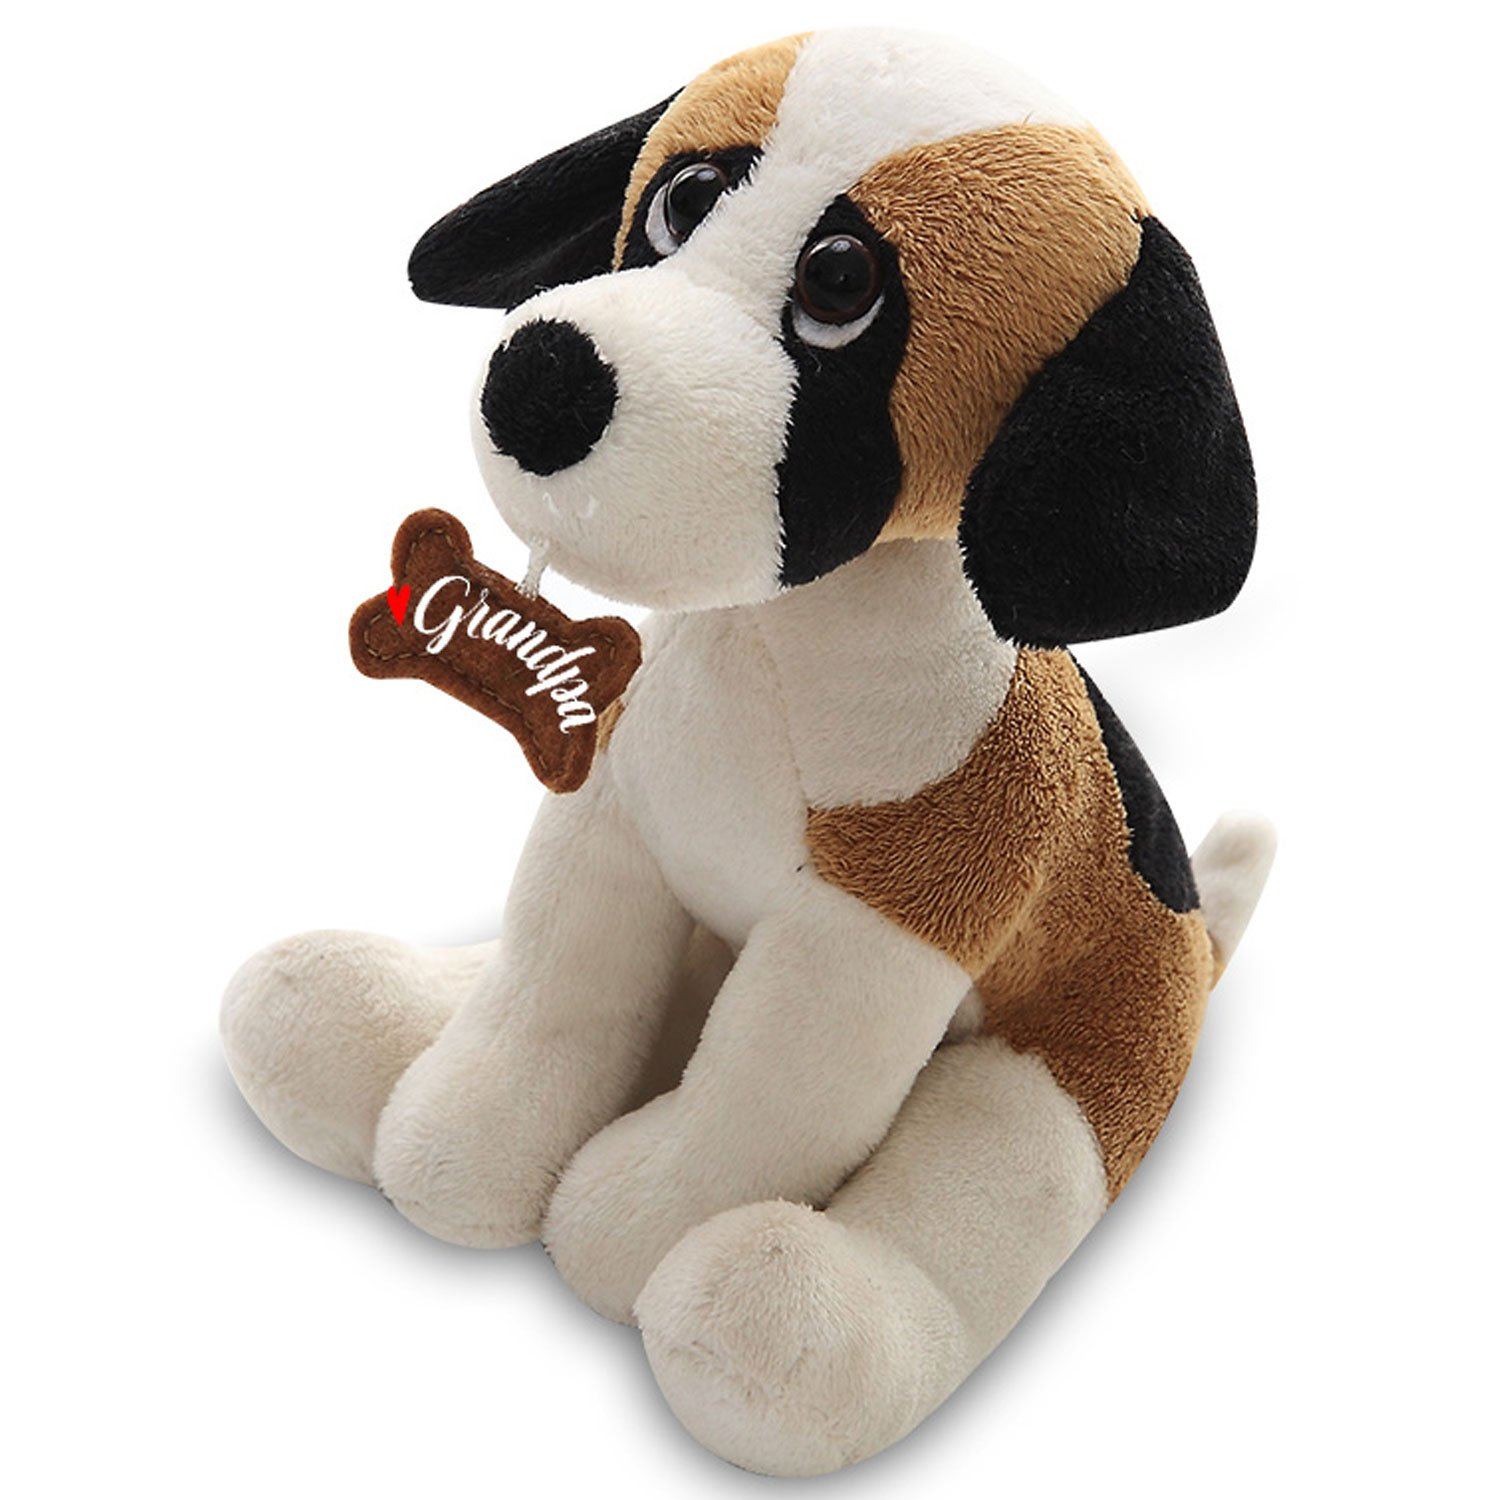 Plushland Adorably Stuffed Small Dog Holding a Bone Holiday Plush Animal Toys For kids and Superb Gift for Grandpa on Father/'s Day Show your Love with 7 Inch Grandpa Husky Message on It